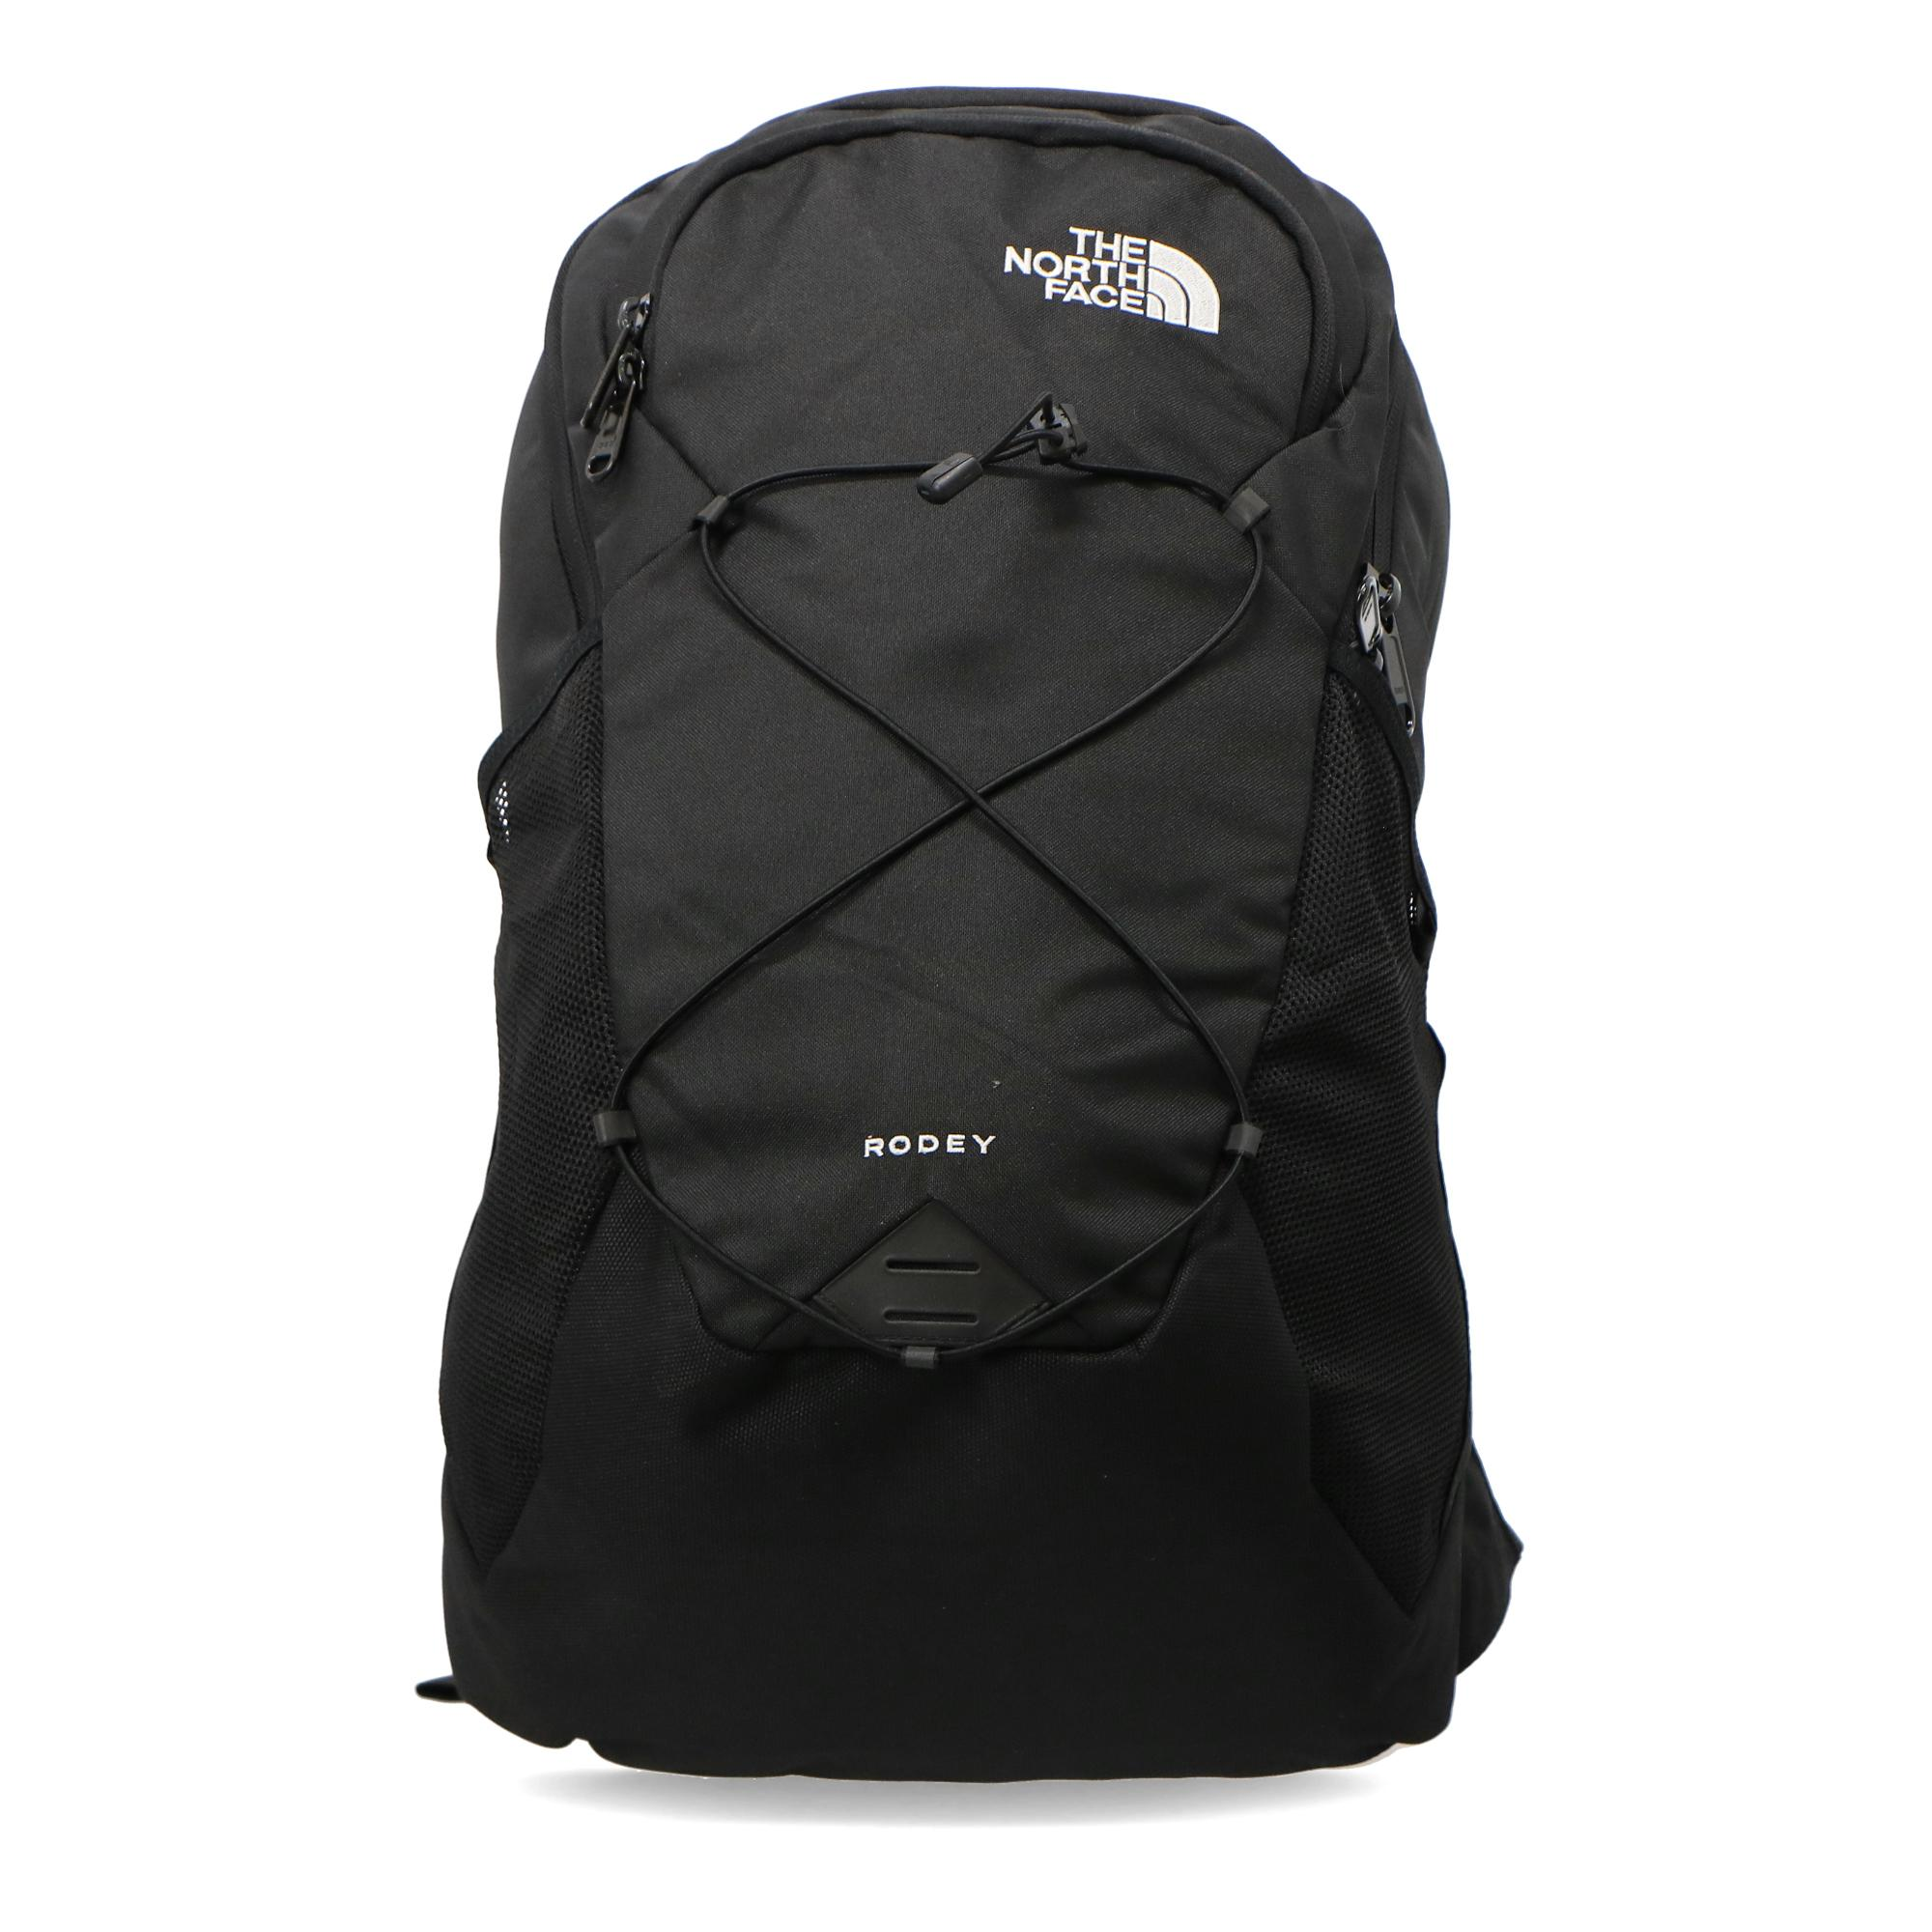 The North Face Rodey Black